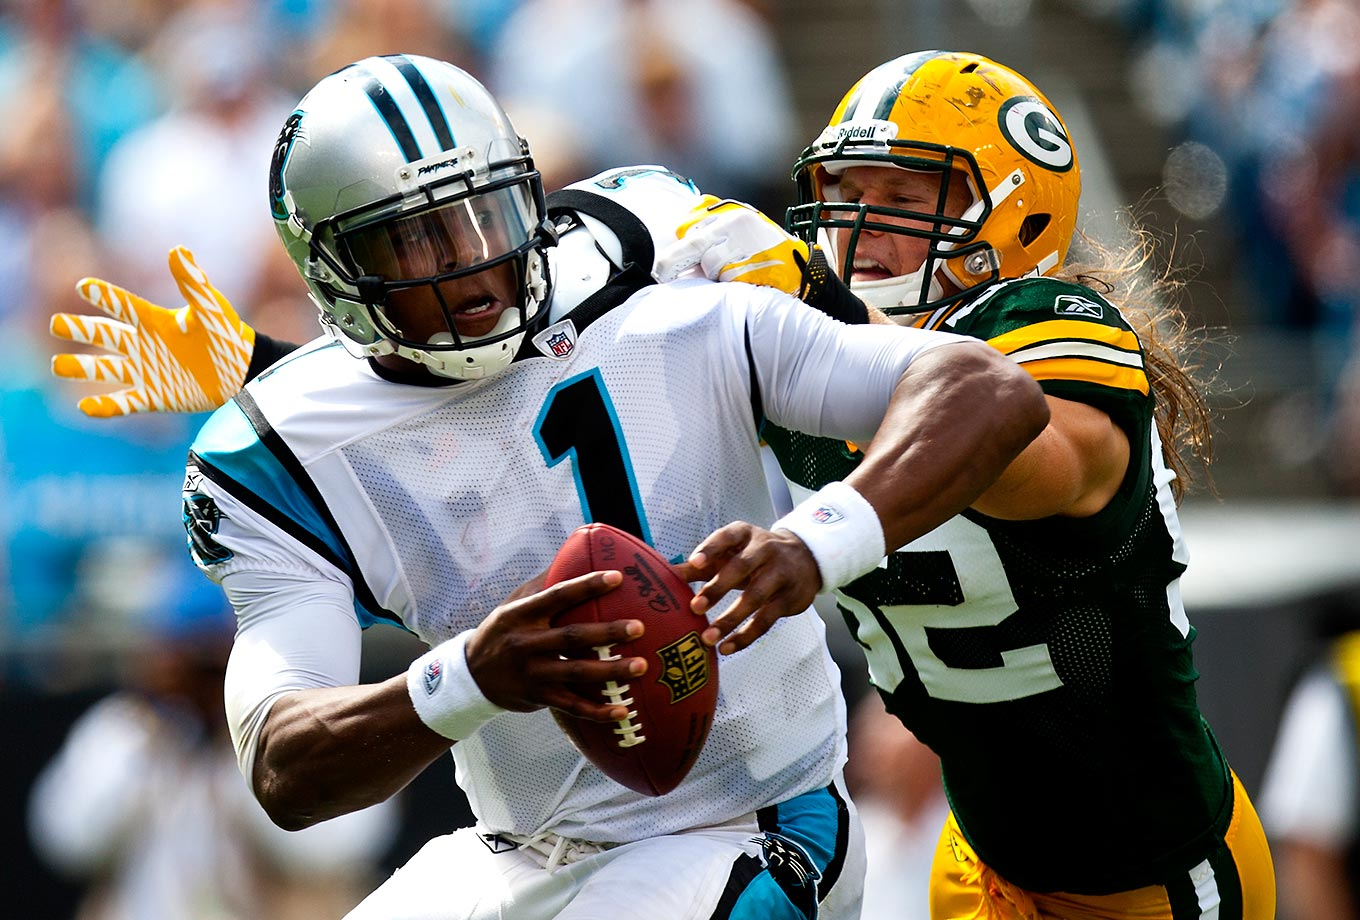 Cam Newton fights off Green Bay Packers cornerback Morgan Burnett to gain extra yardage during a September 2011 matchup. The Packers won 30-23 in Newton's second professional game. Text credit: Daniel Hersh